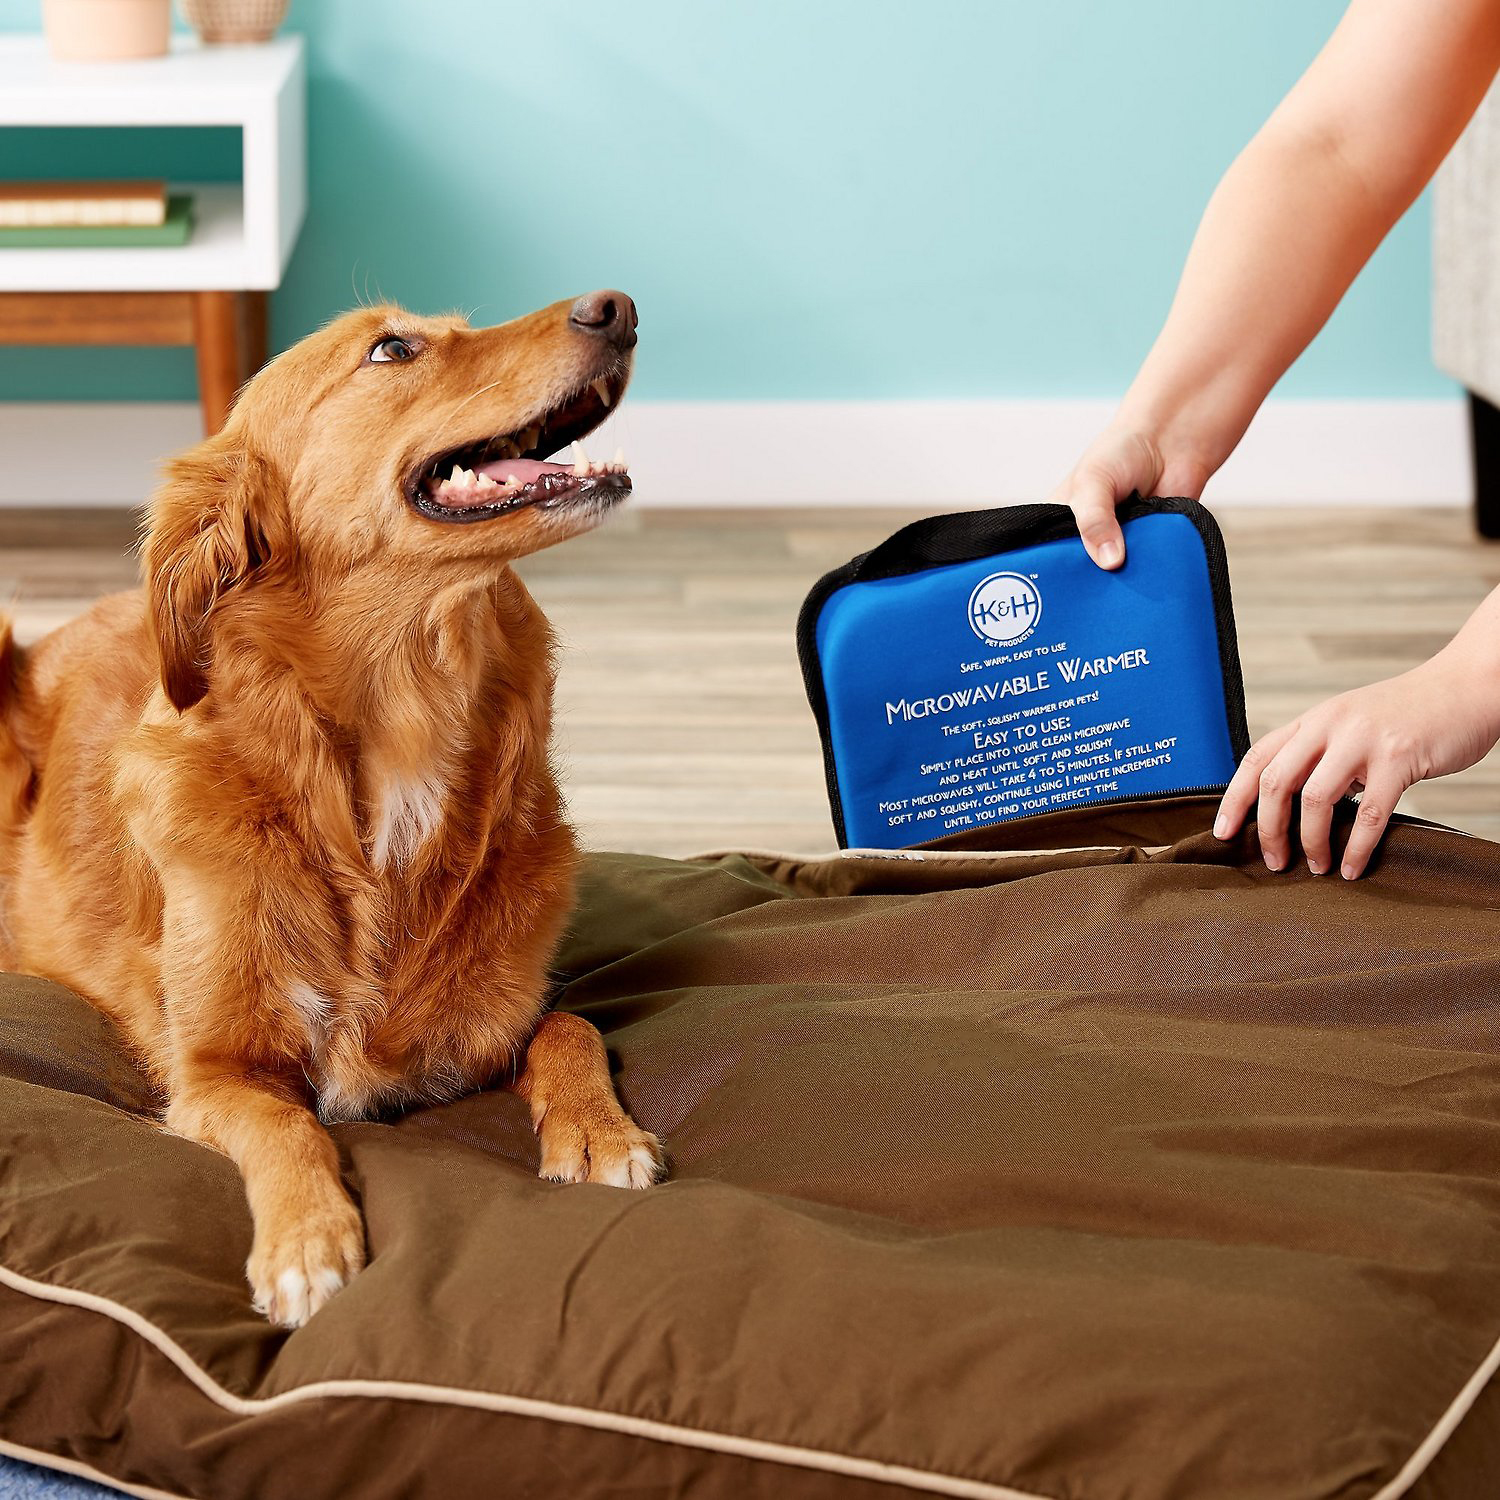 k-and-h-pet-products-microwavable-dog-bed-warmer